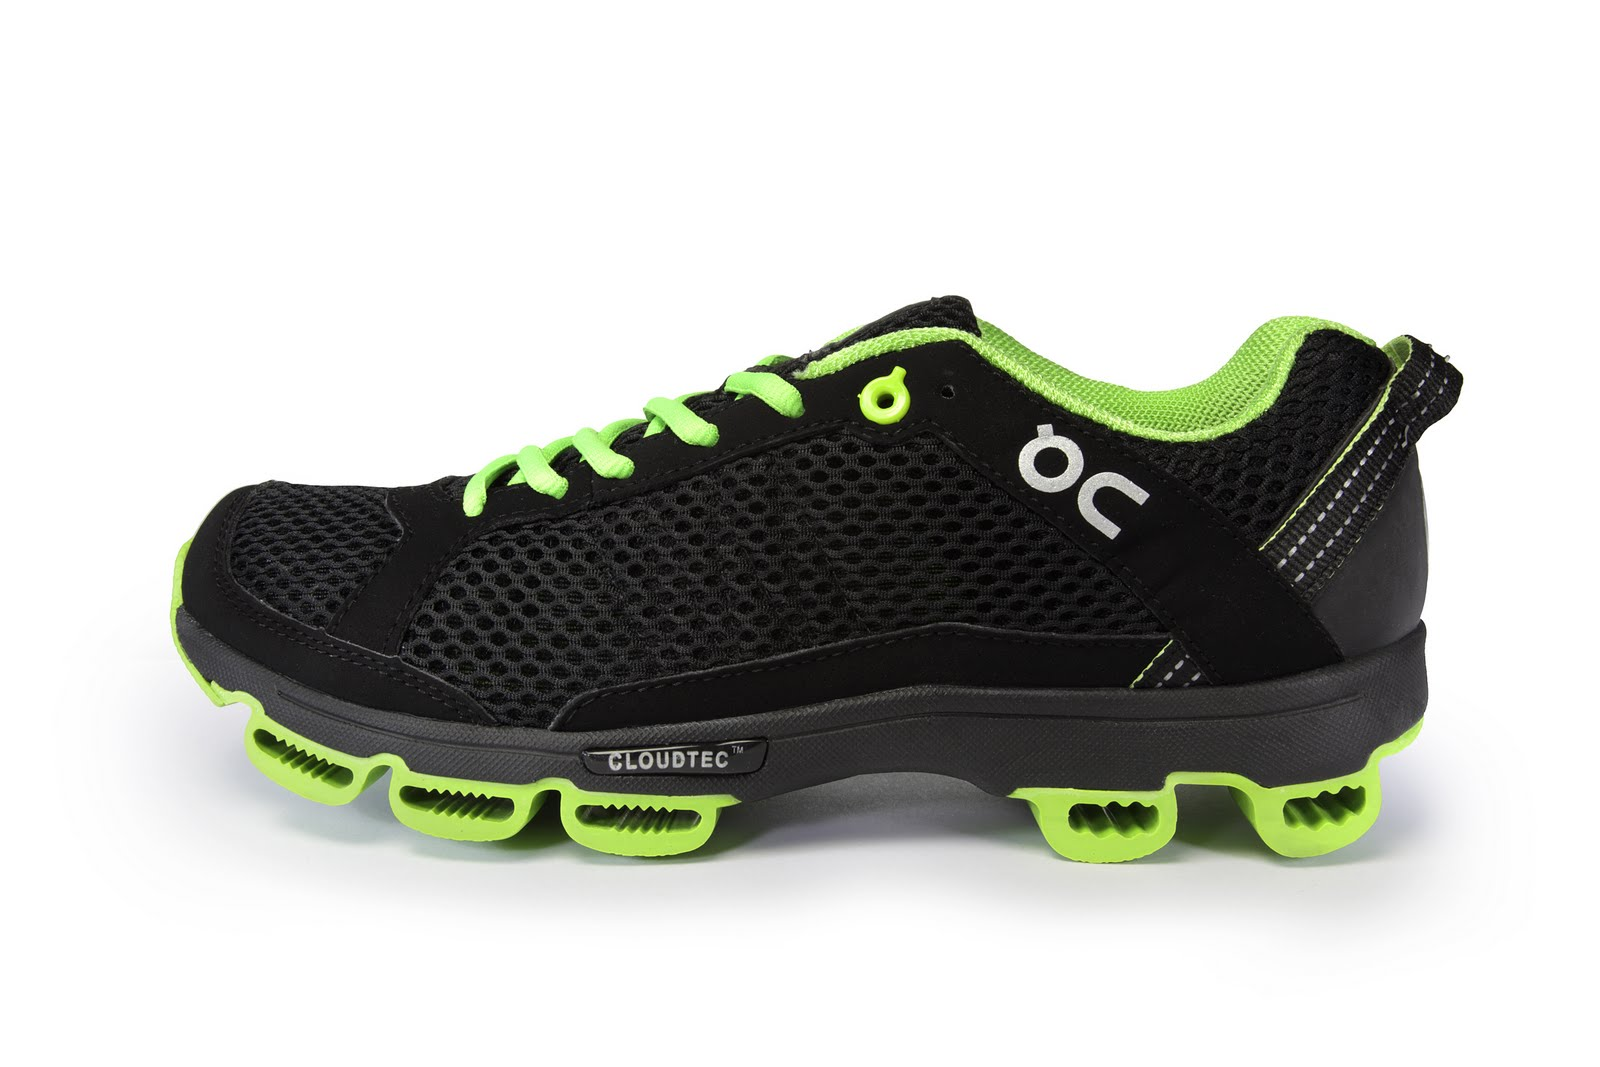 Running Shoes Singapore Review